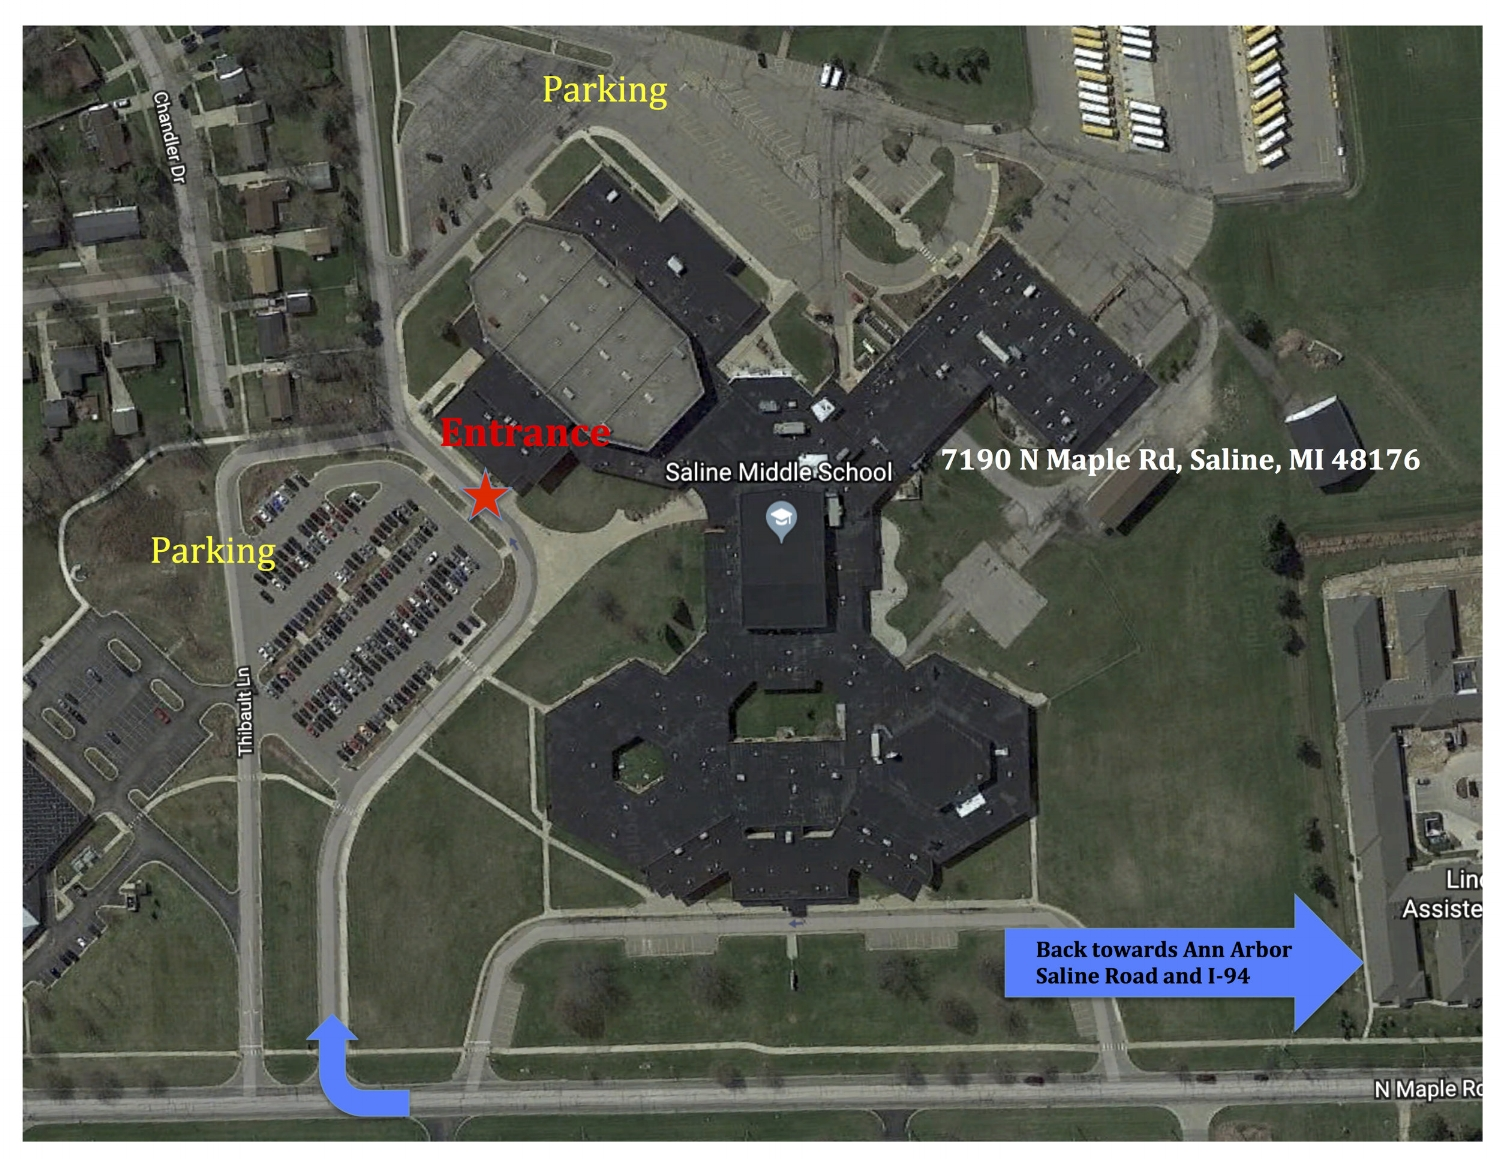 SALINE MIDDLE SCHOOL MAP